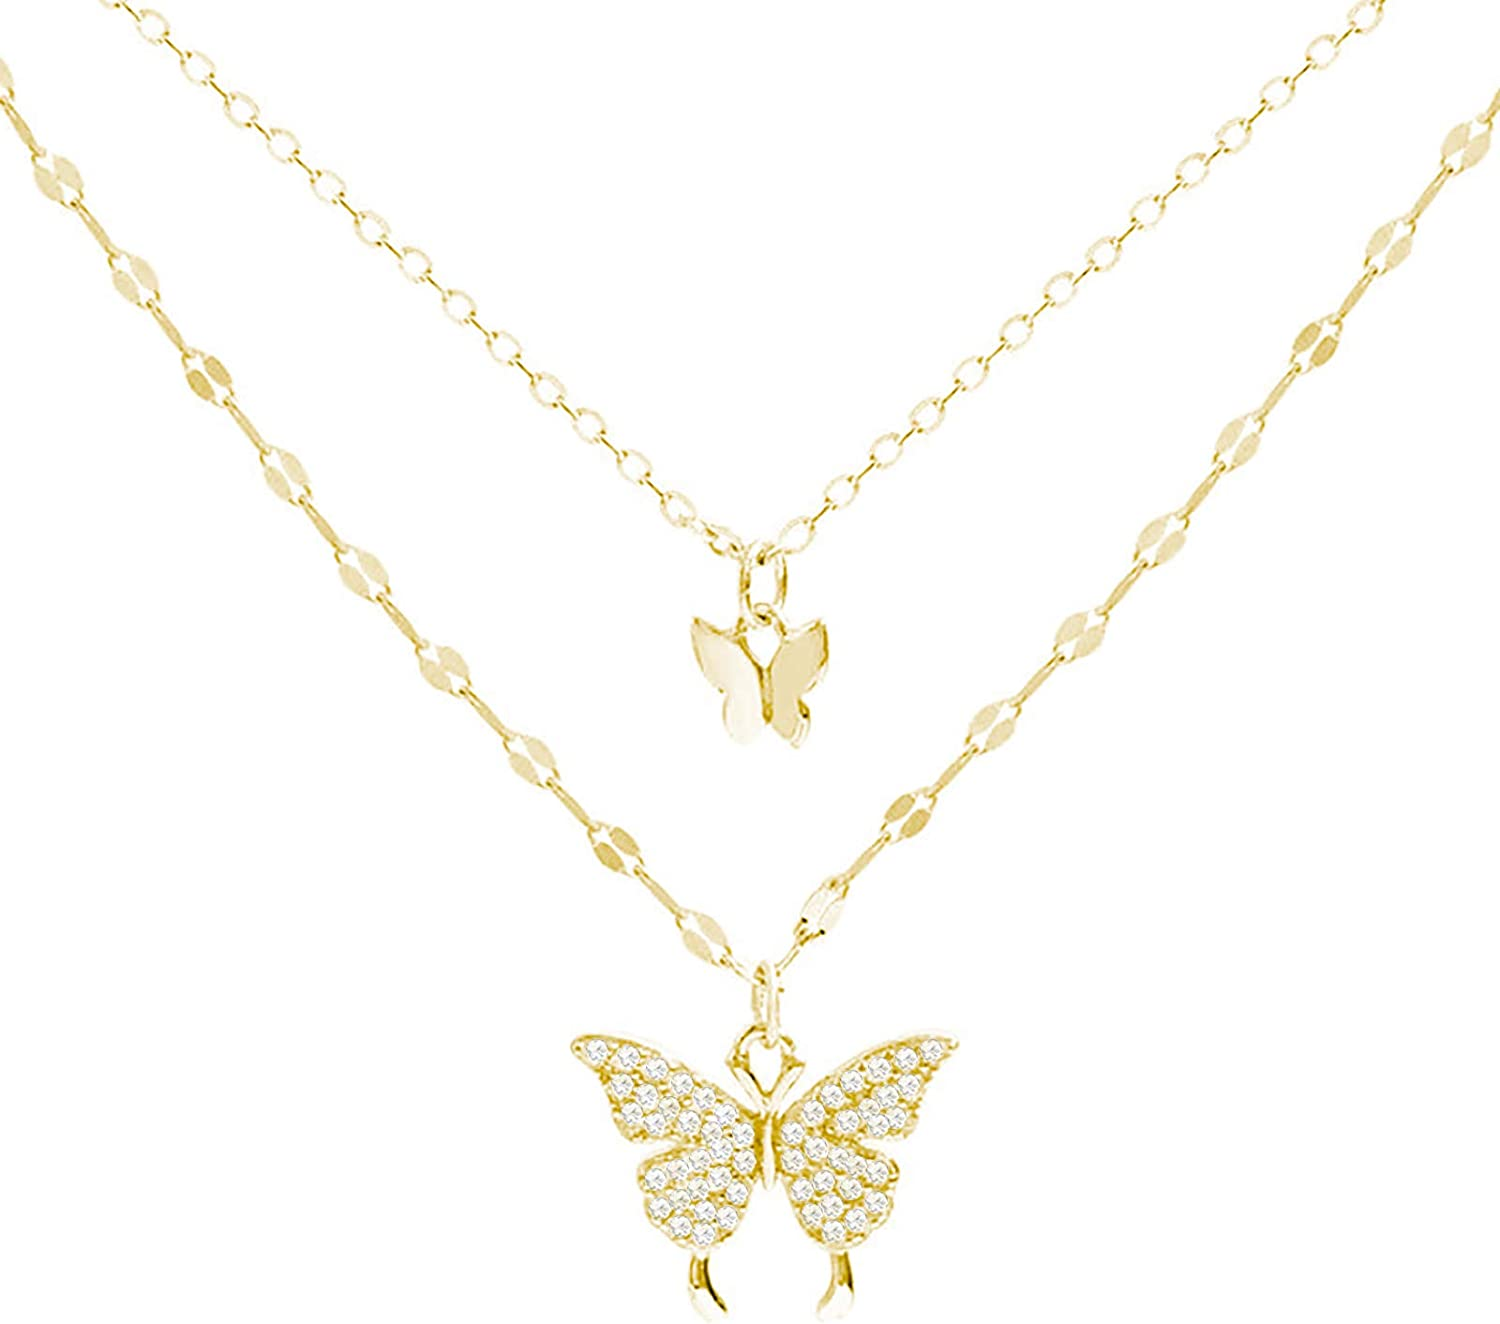 Layered Butterfly Pendant Necklace Dainty Adjustable Multilayer Butterfly Choker Necklaces for Women Girls